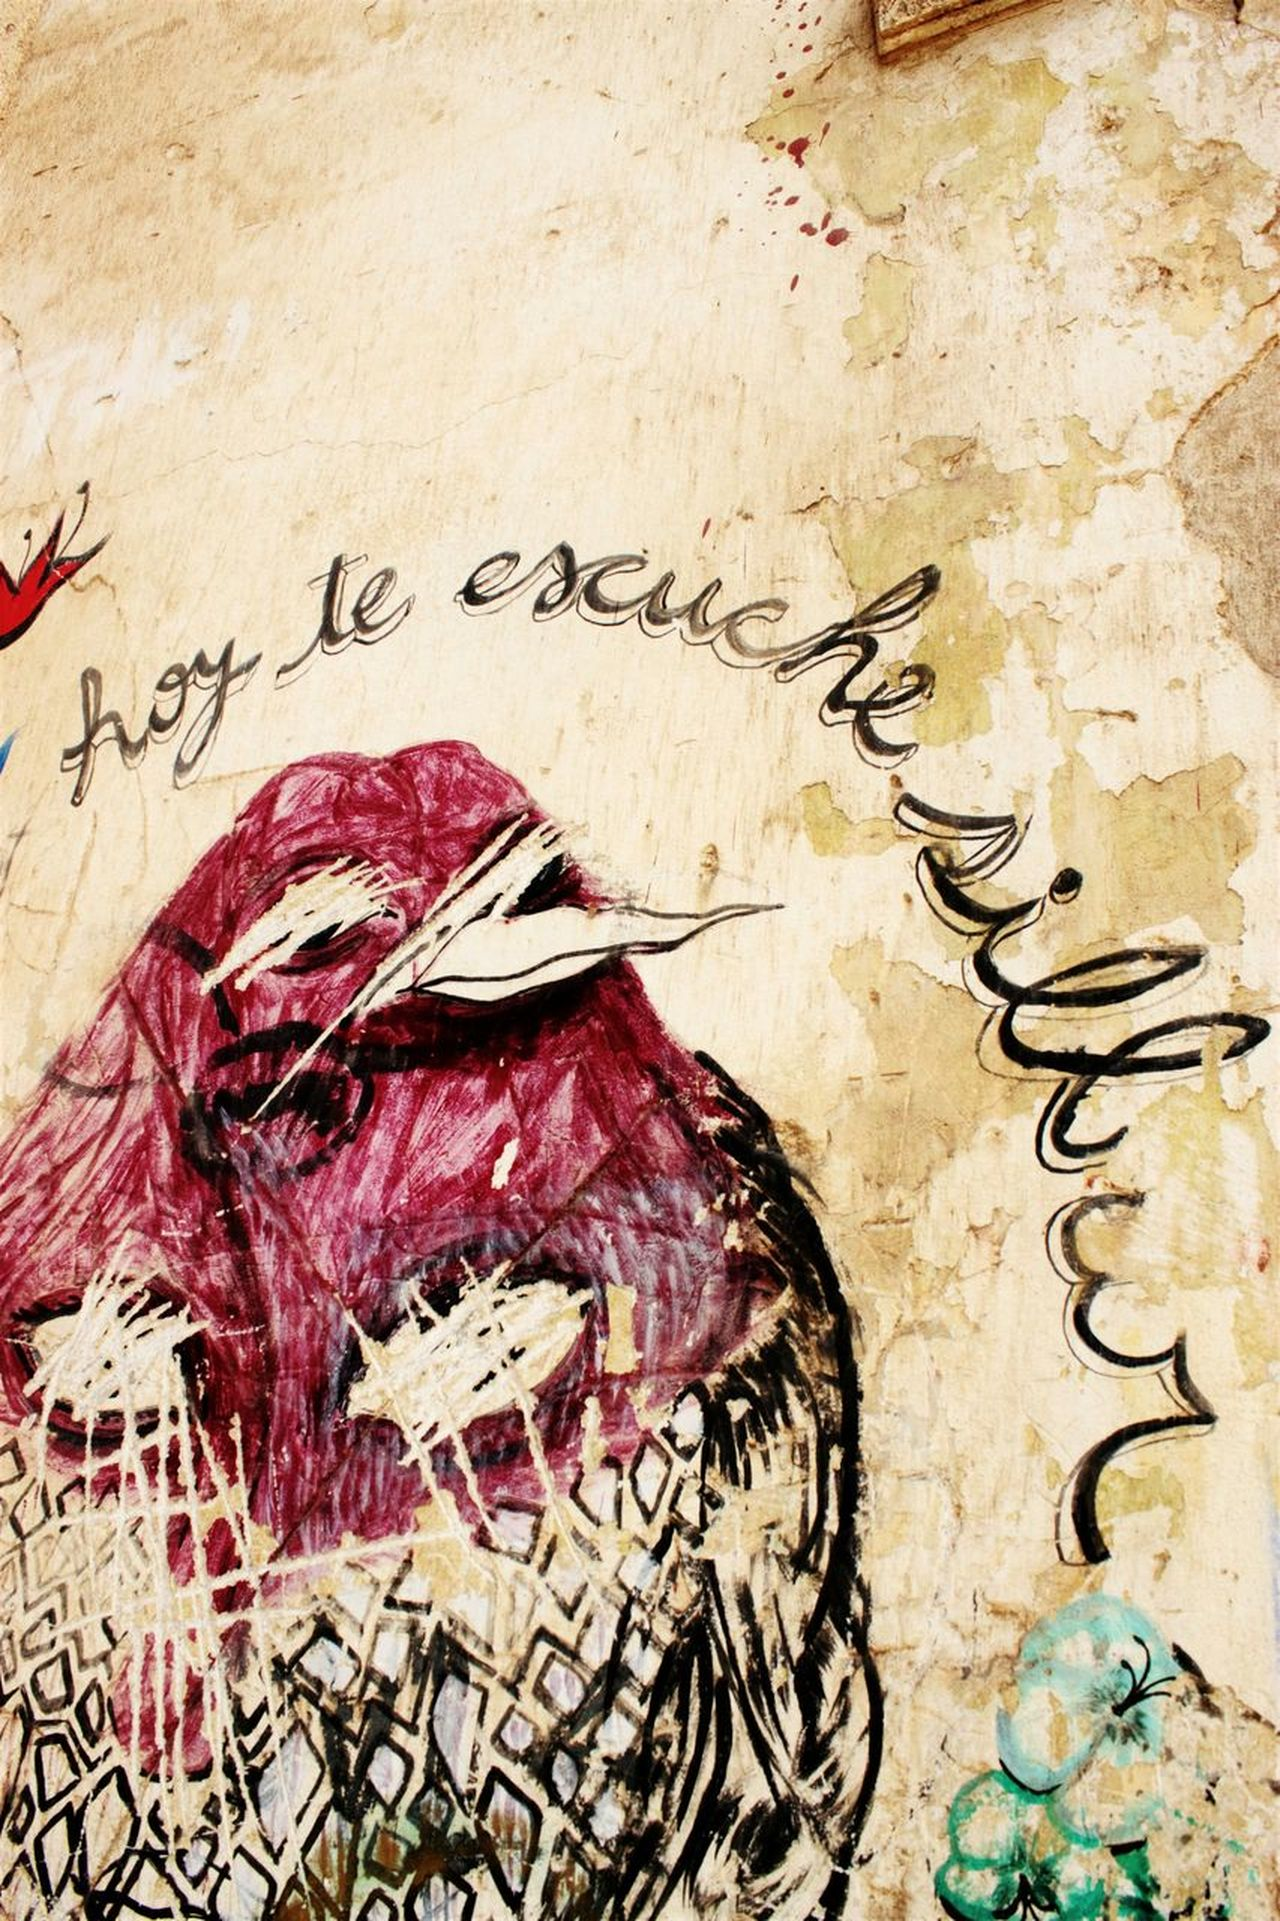 Hoy te escuché silbar Text No People Architecture Day Outdoors Ink Close-up Birdsofinstagram Portrait Wall Painting/grafitti Wall Murals Wallpainting